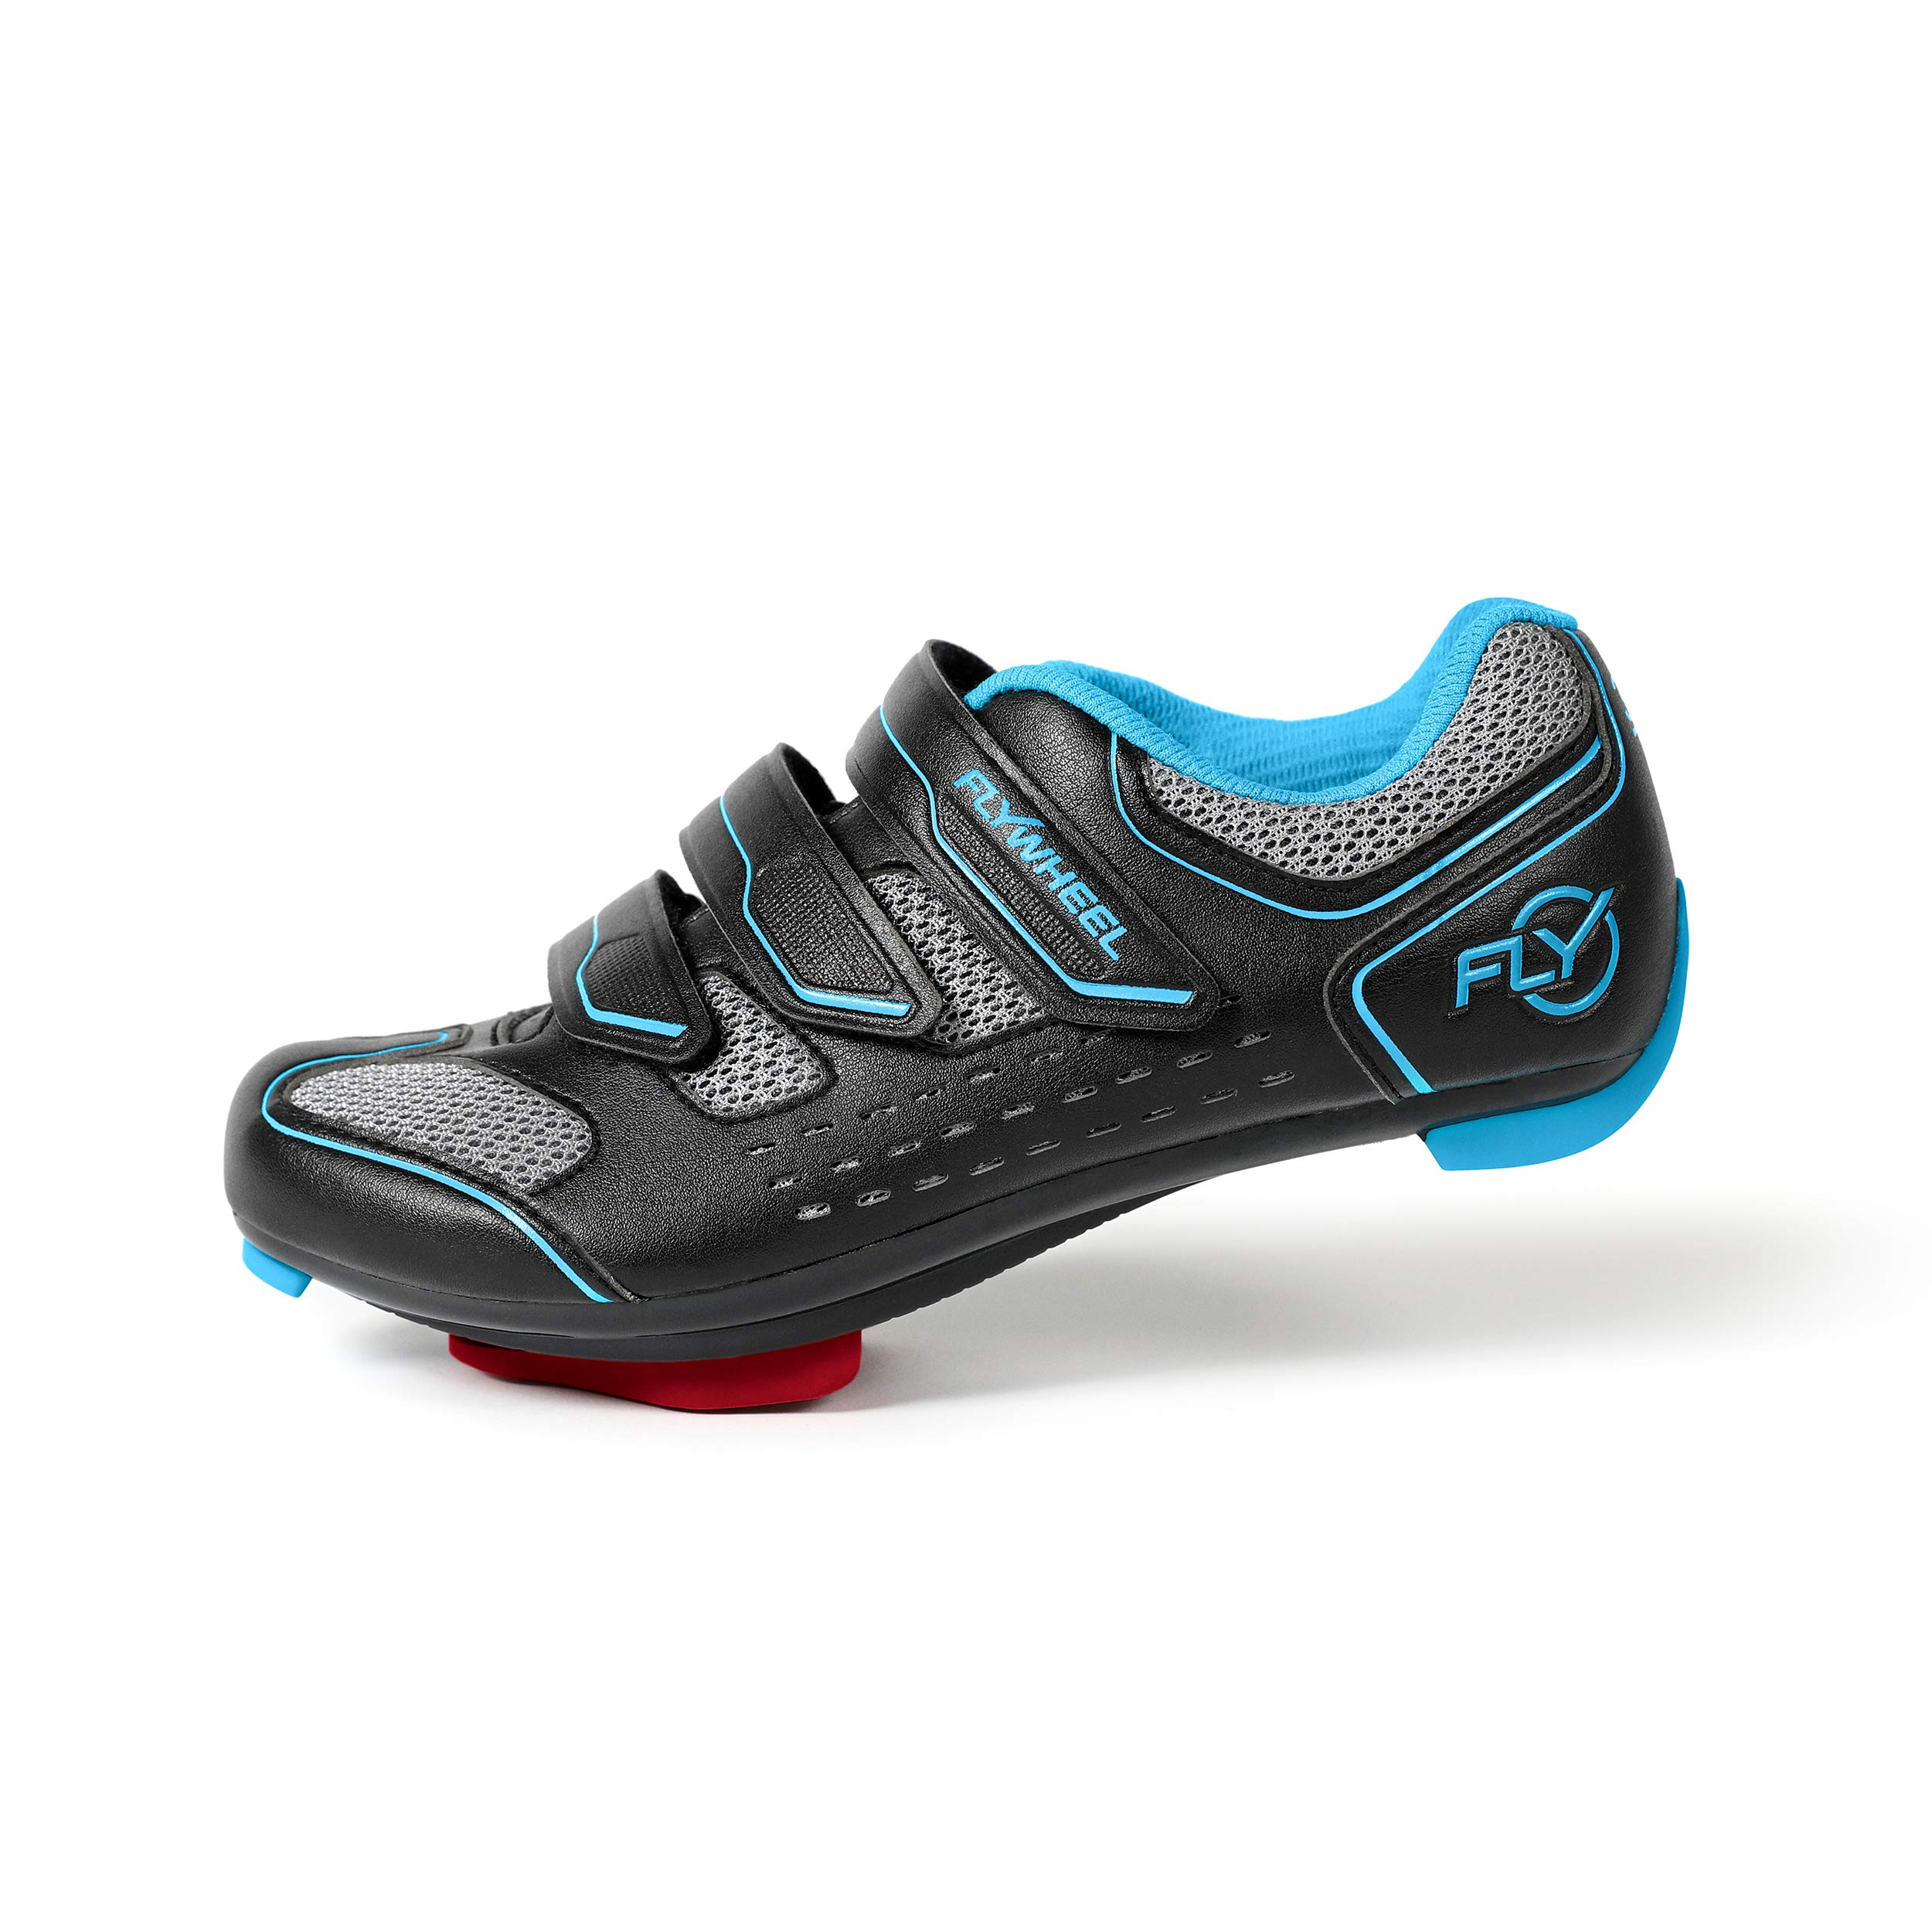 Flywheel Sports Indoor Cycling Shoe with LOOK Delta Cleats - Size 50 (US Men's 14.5 - 15) by Flywheel Sports